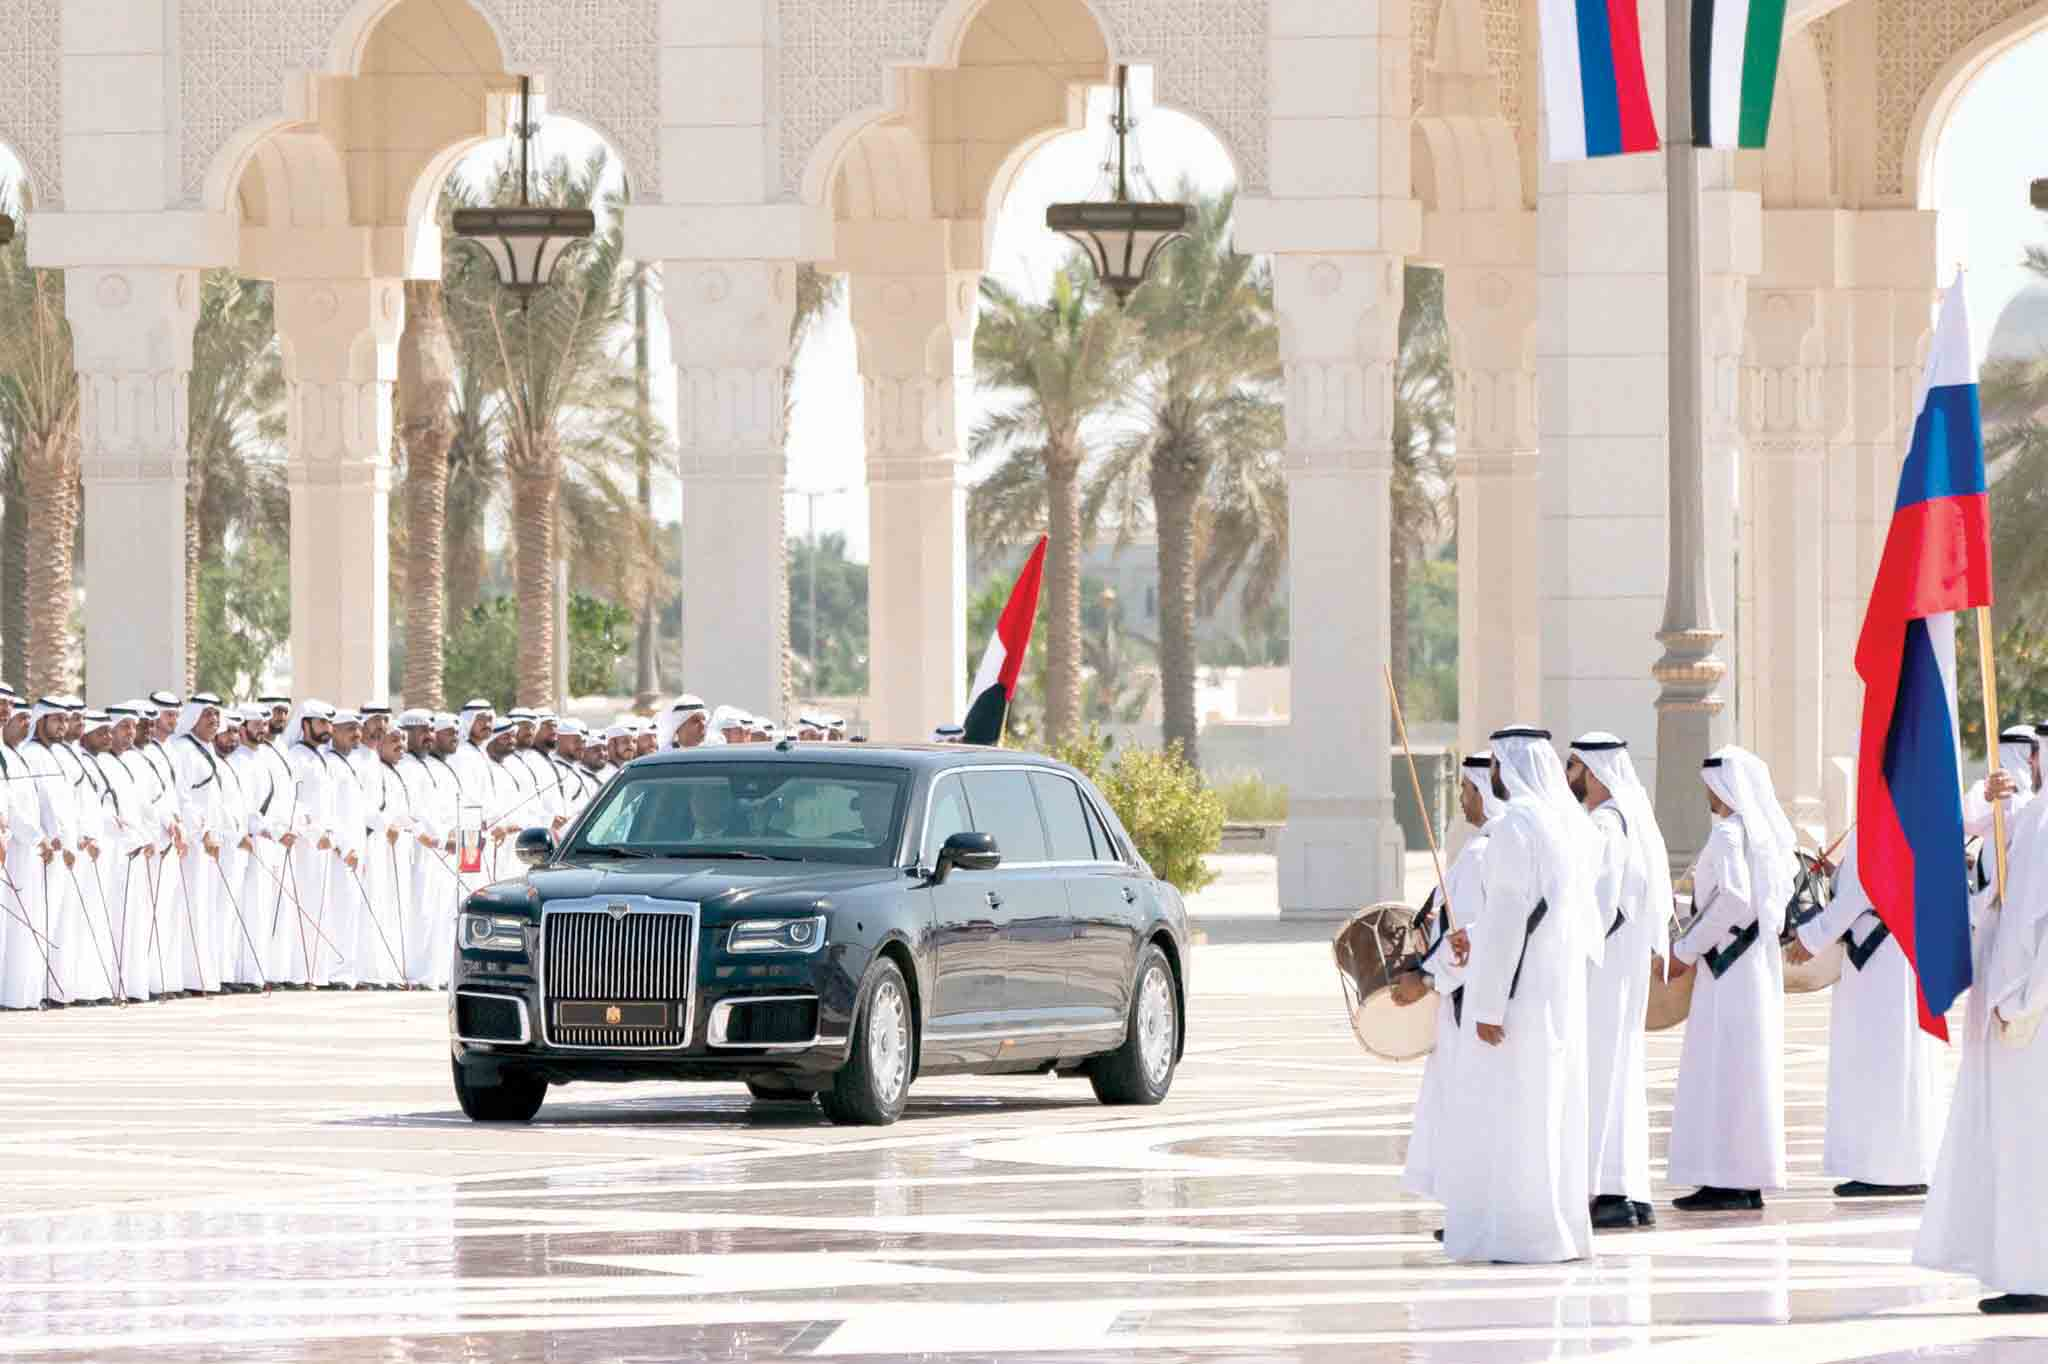 Warm welcome. Russian President Vladimir Putin arrives in a car at Qasr Al Watan in Abu Dhabi, October 15. (WAM)